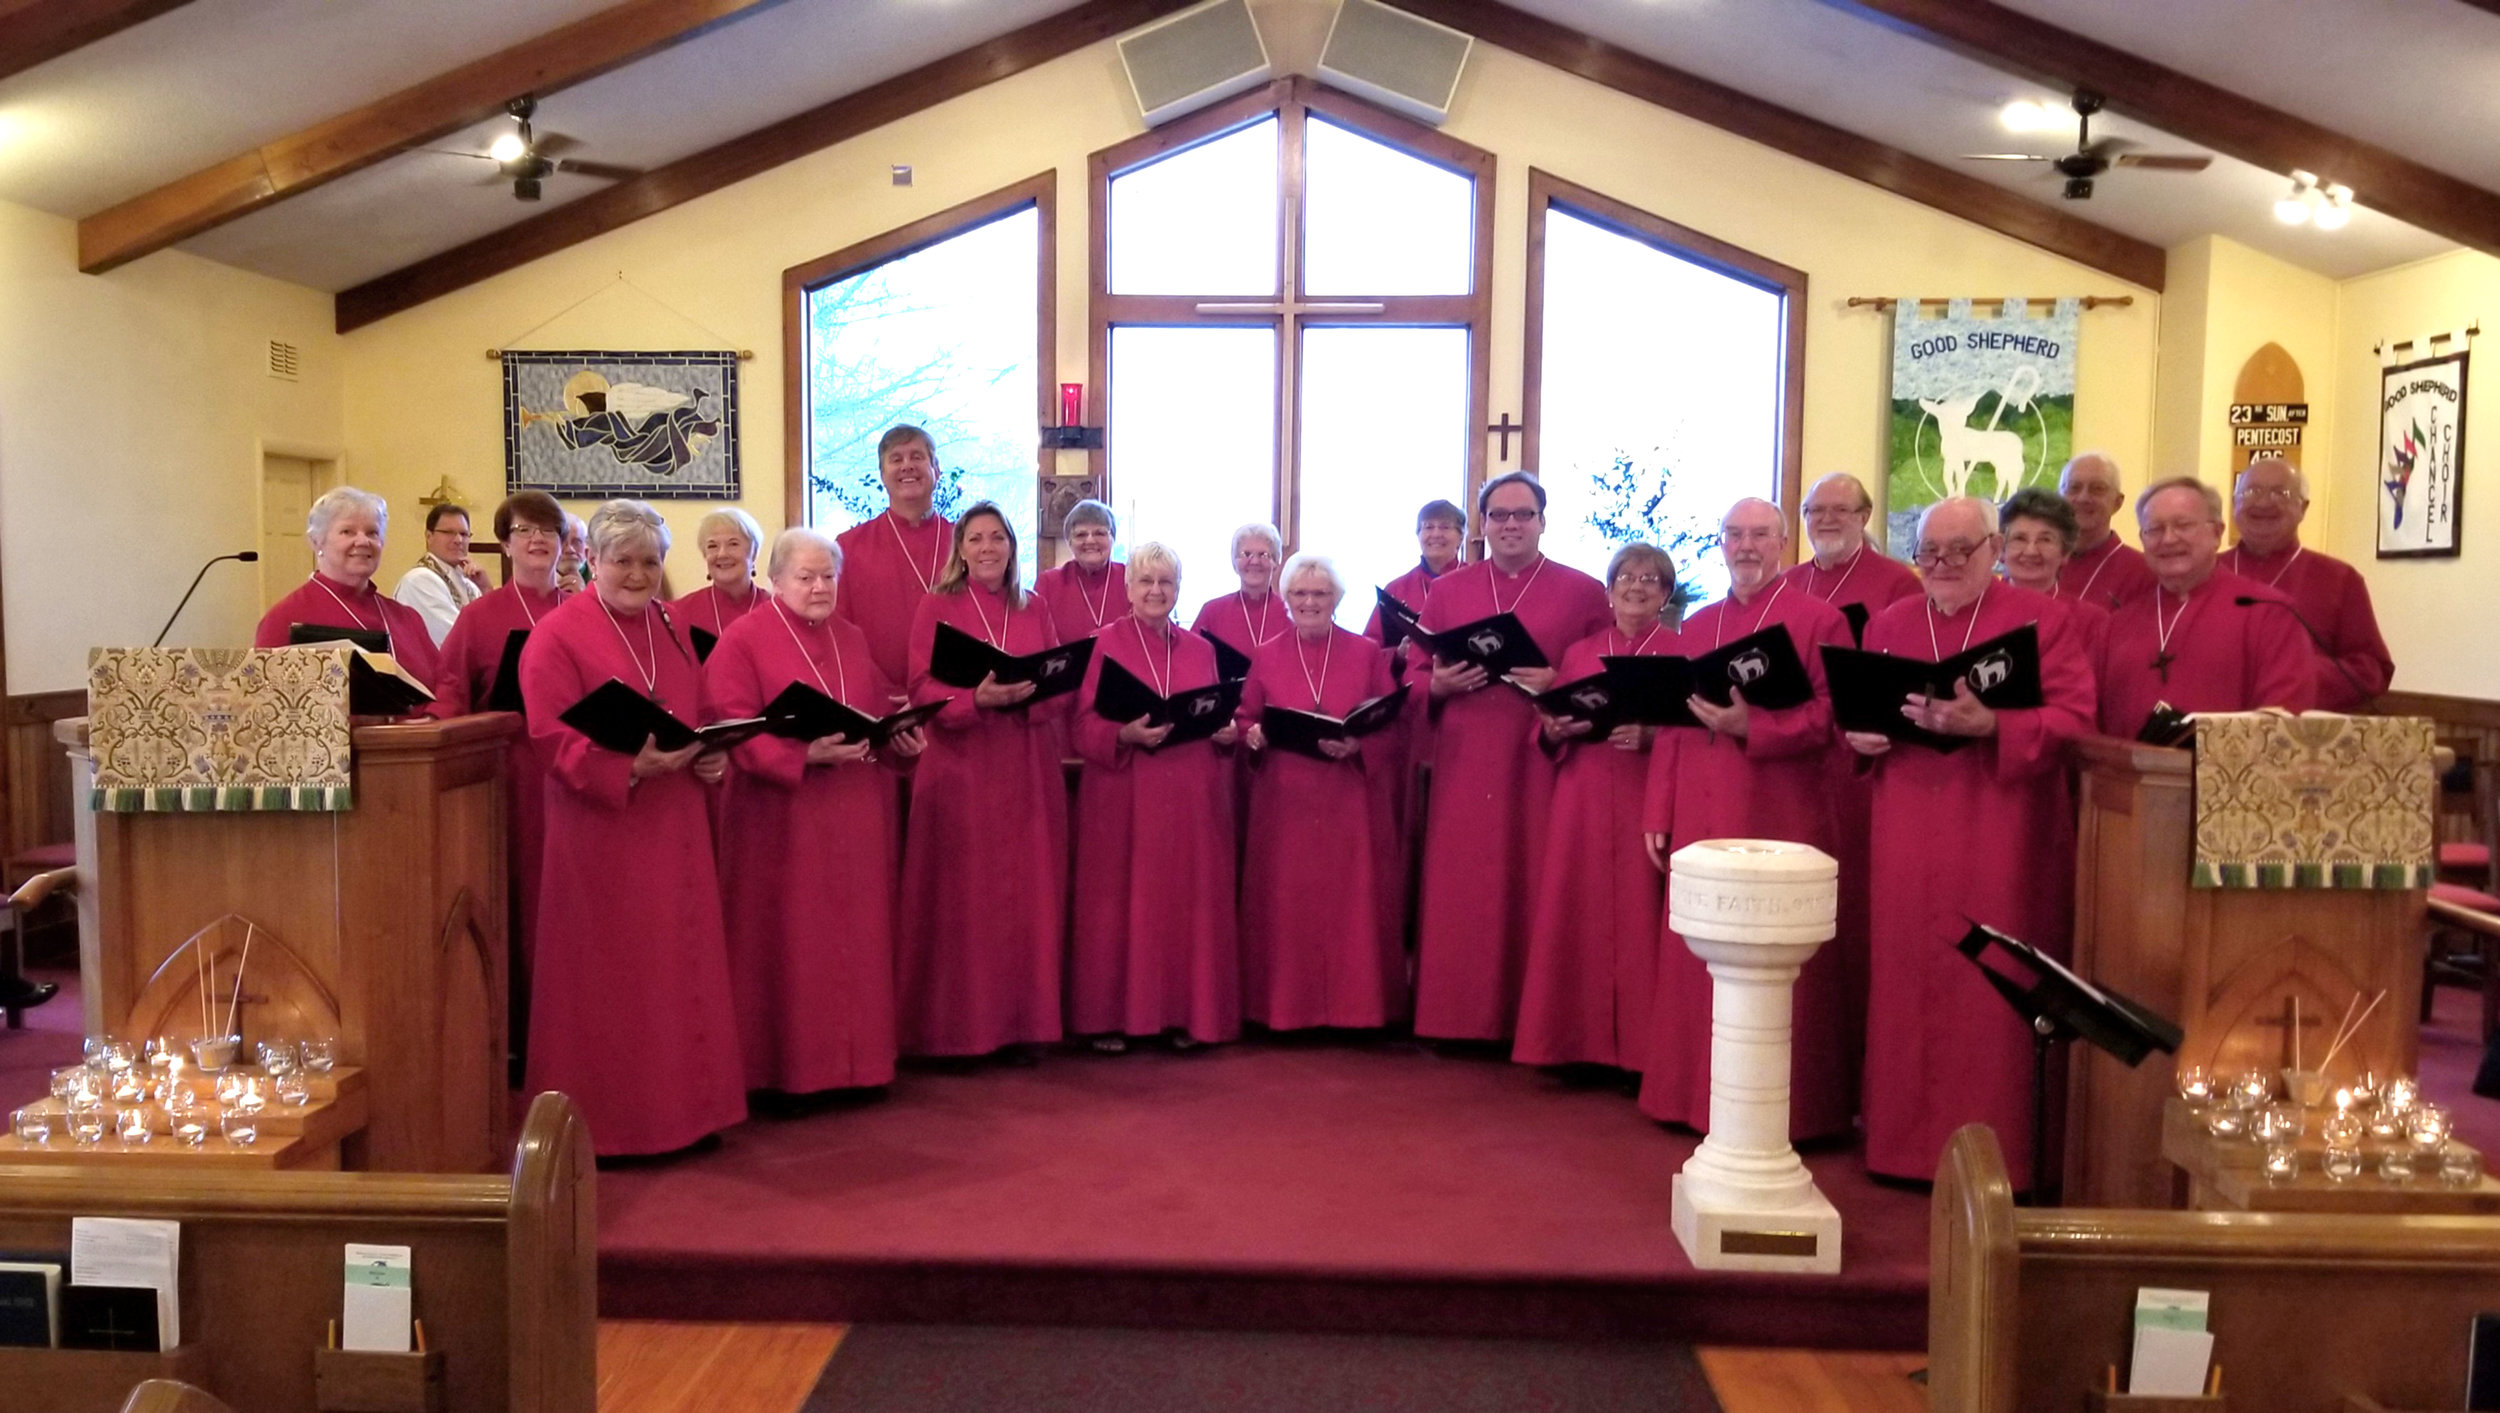 Choir photo original.jpg